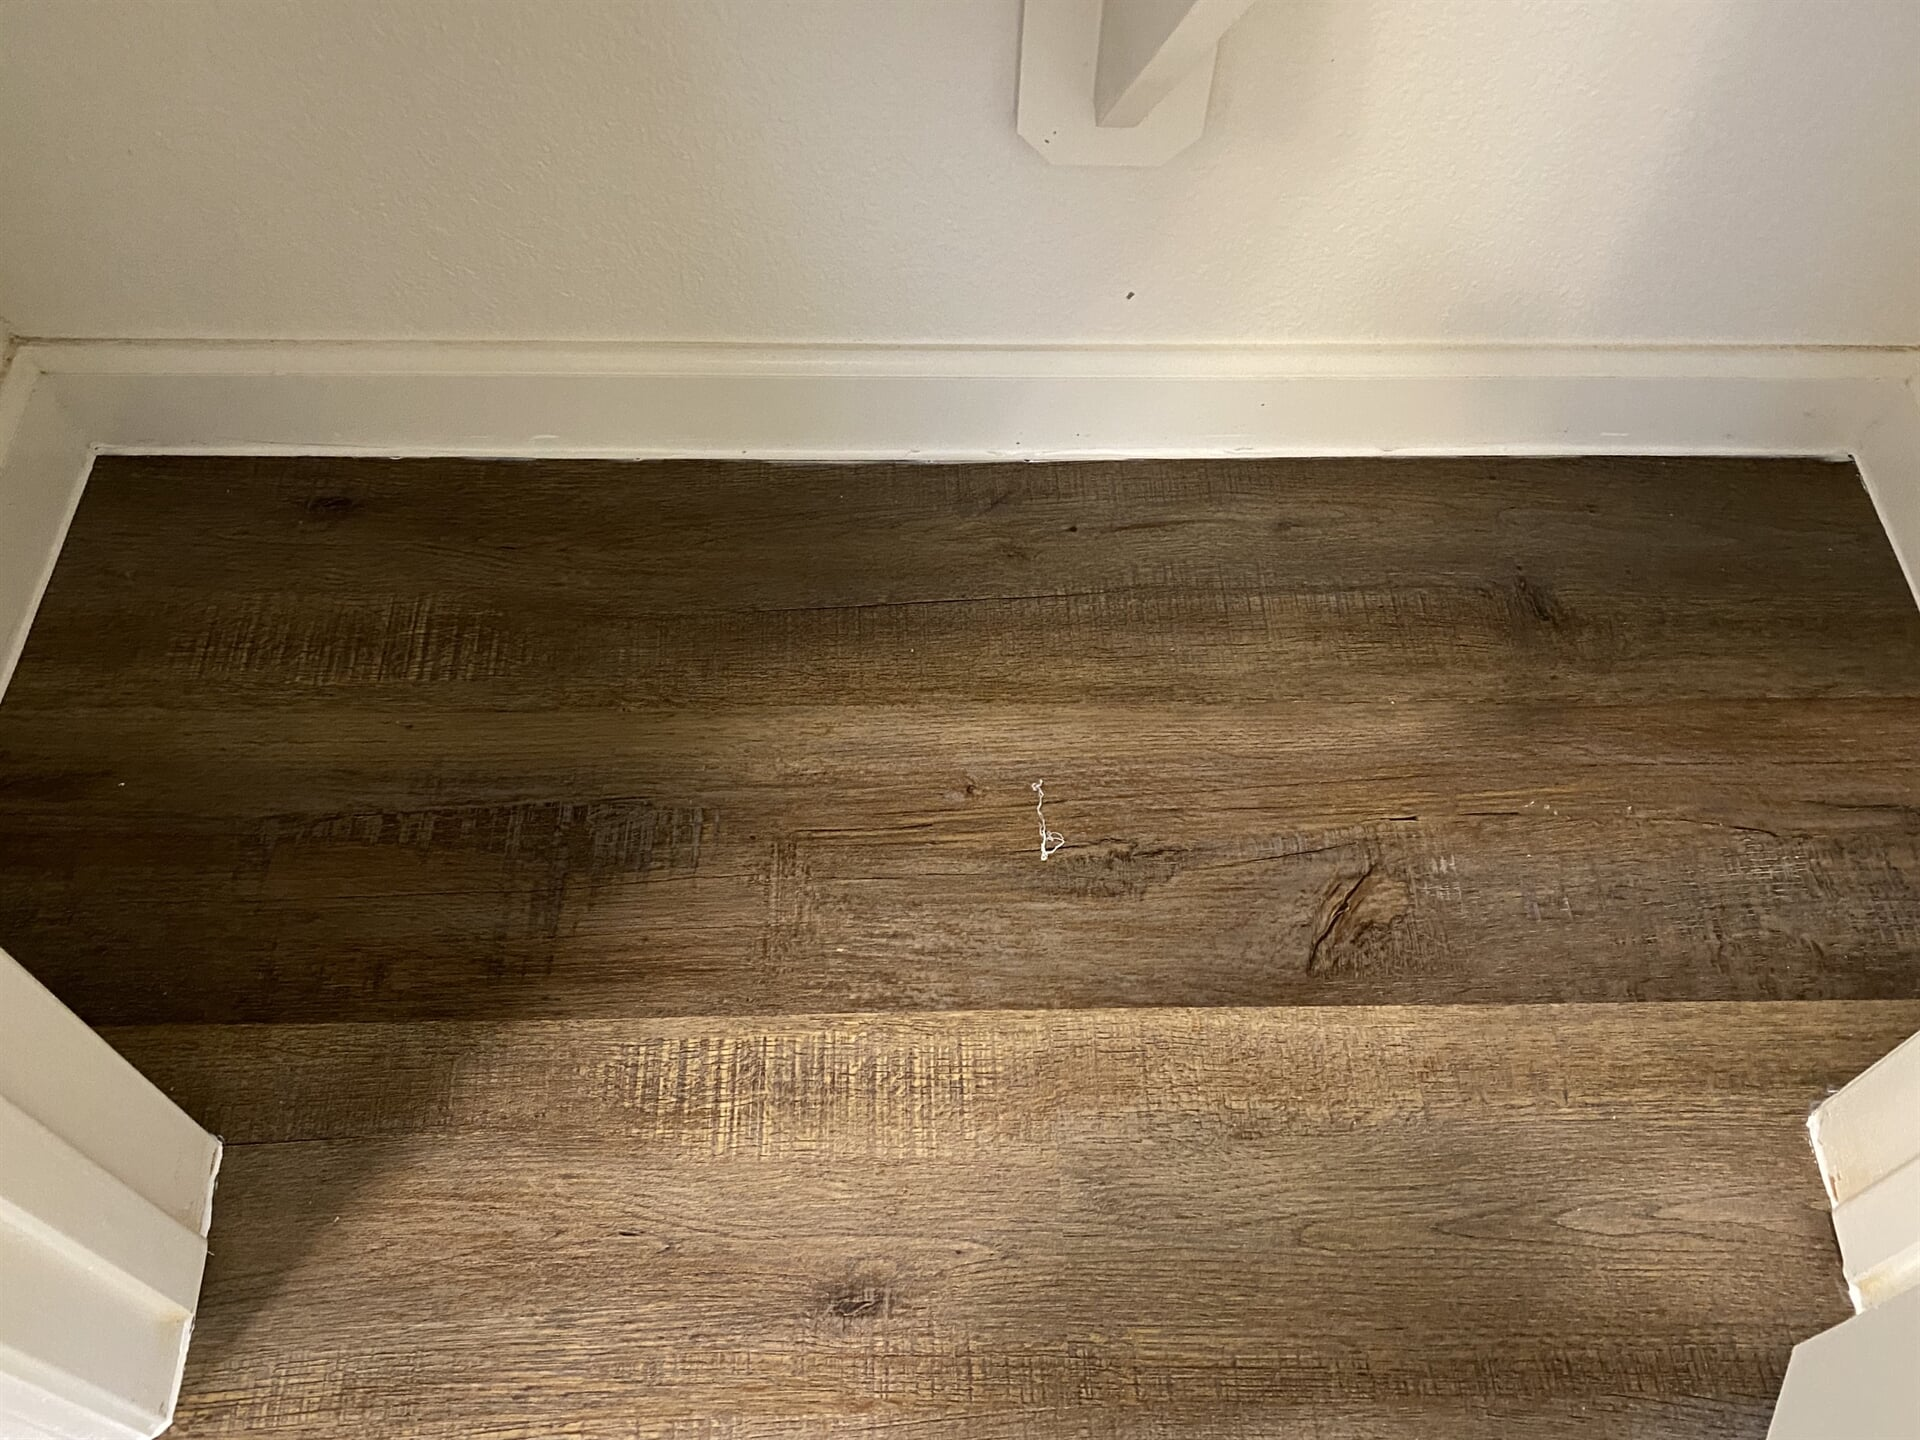 Waterproof flooring from Houston Floor Installation Services in Humble, TX